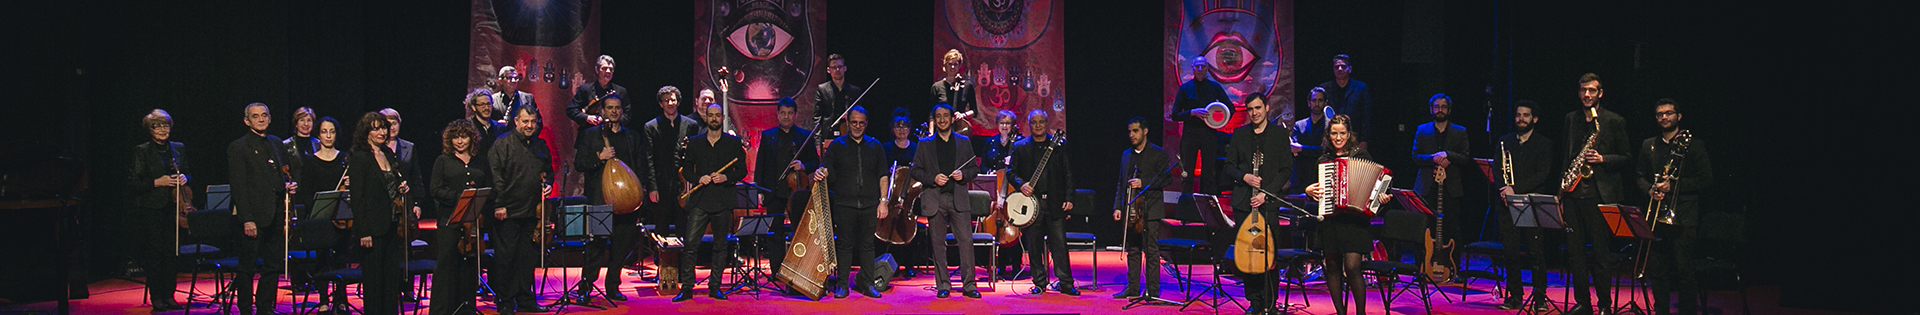 The East West series at the Israeli Opera